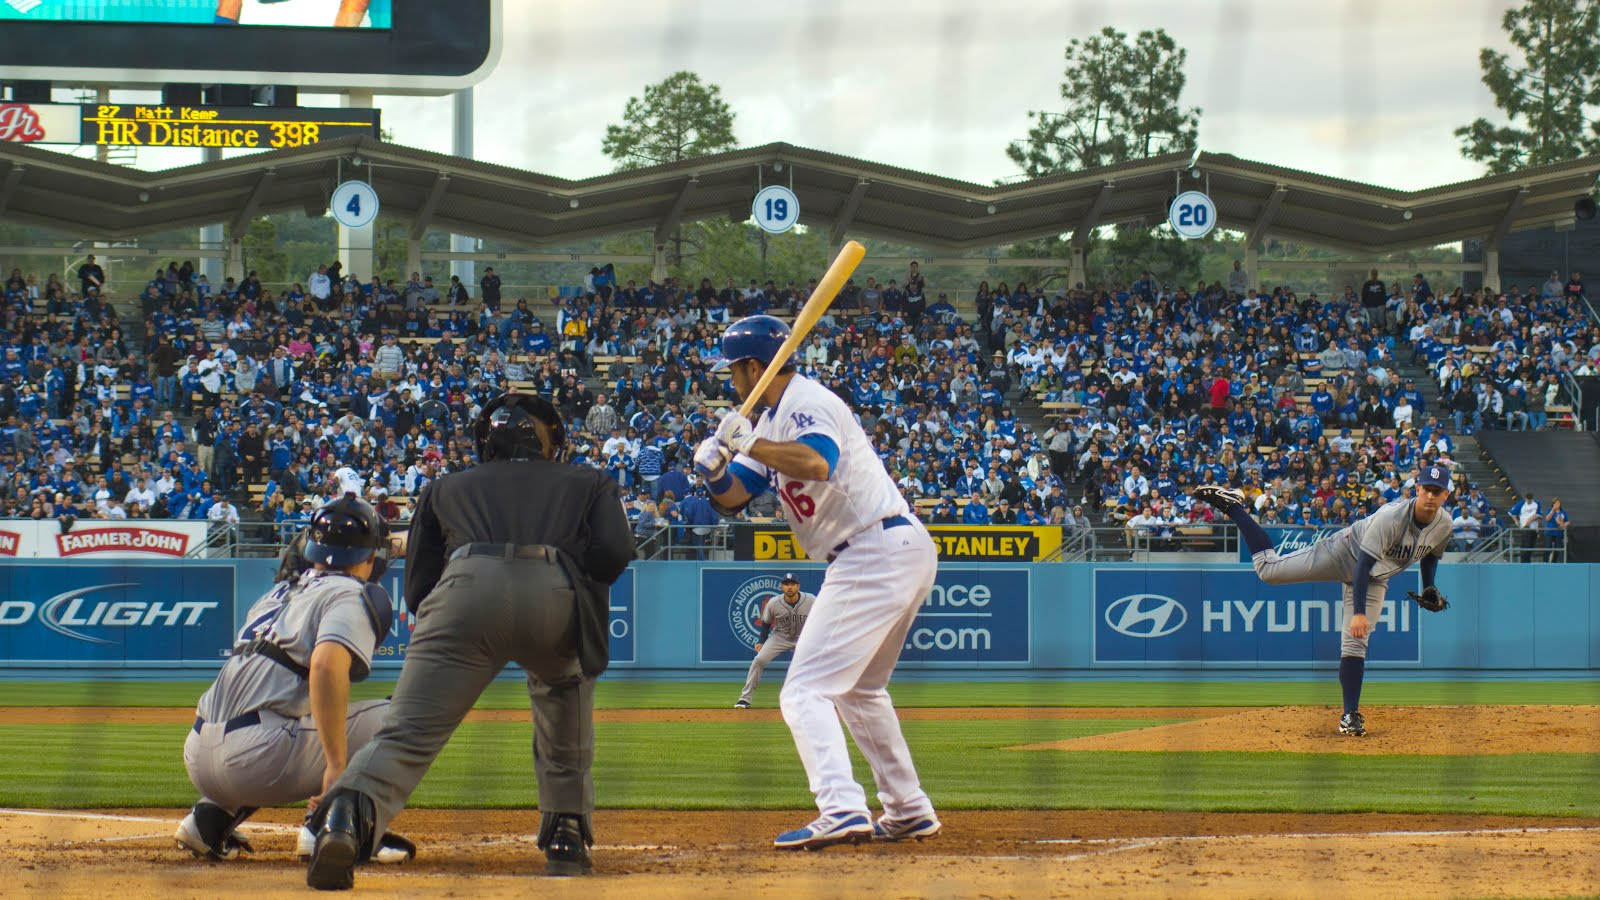 The View From Behind Home Plate: April 2012